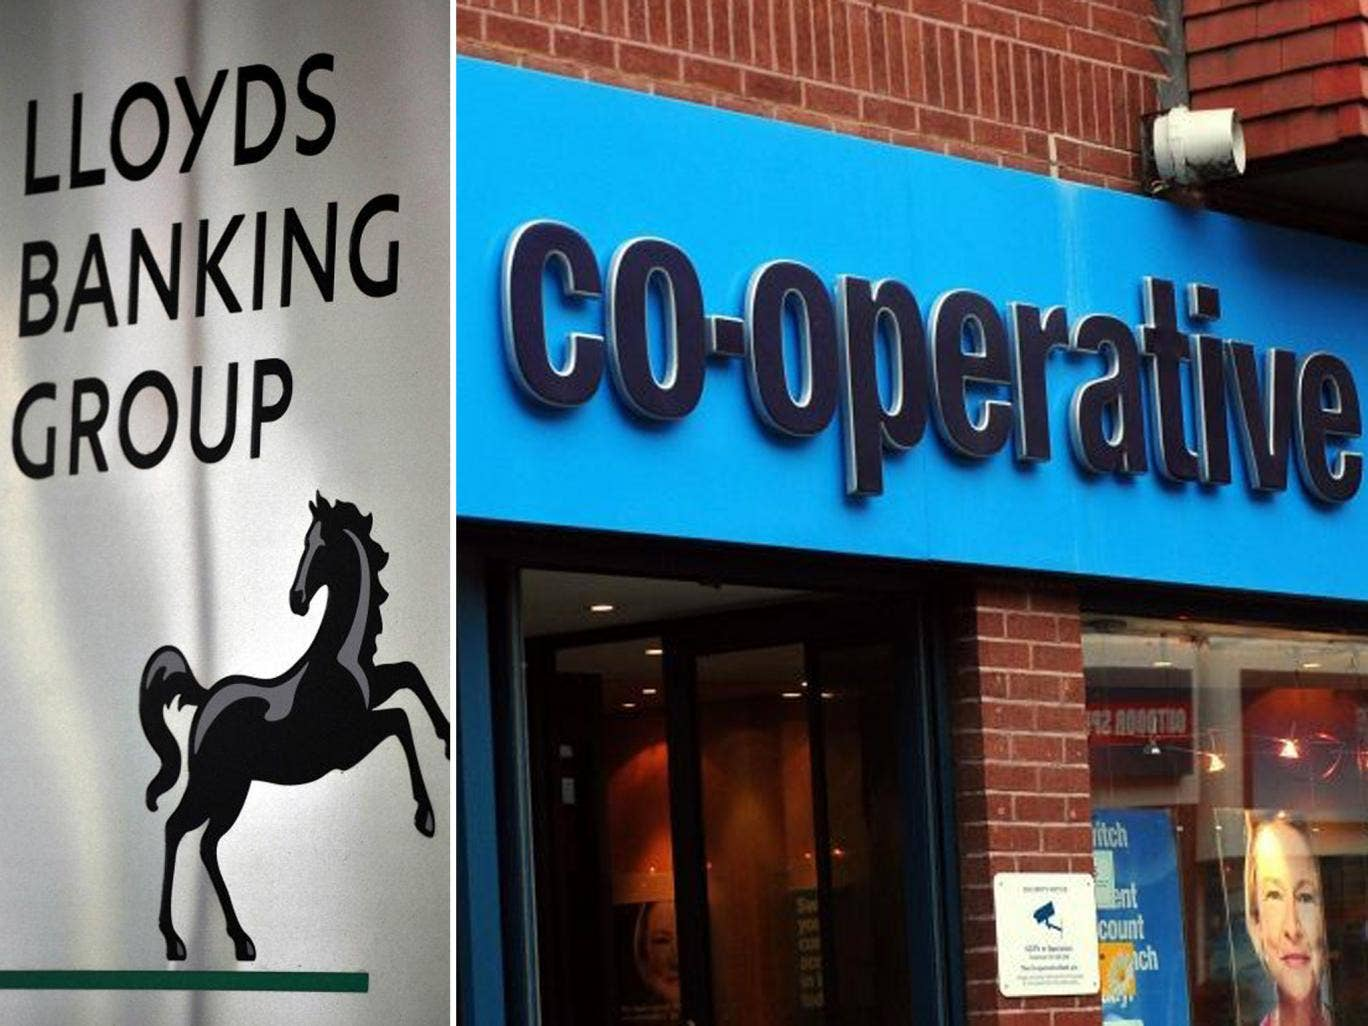 The Co-op said the deal to buy over 600 Lloyds branches was not in its members' best interests